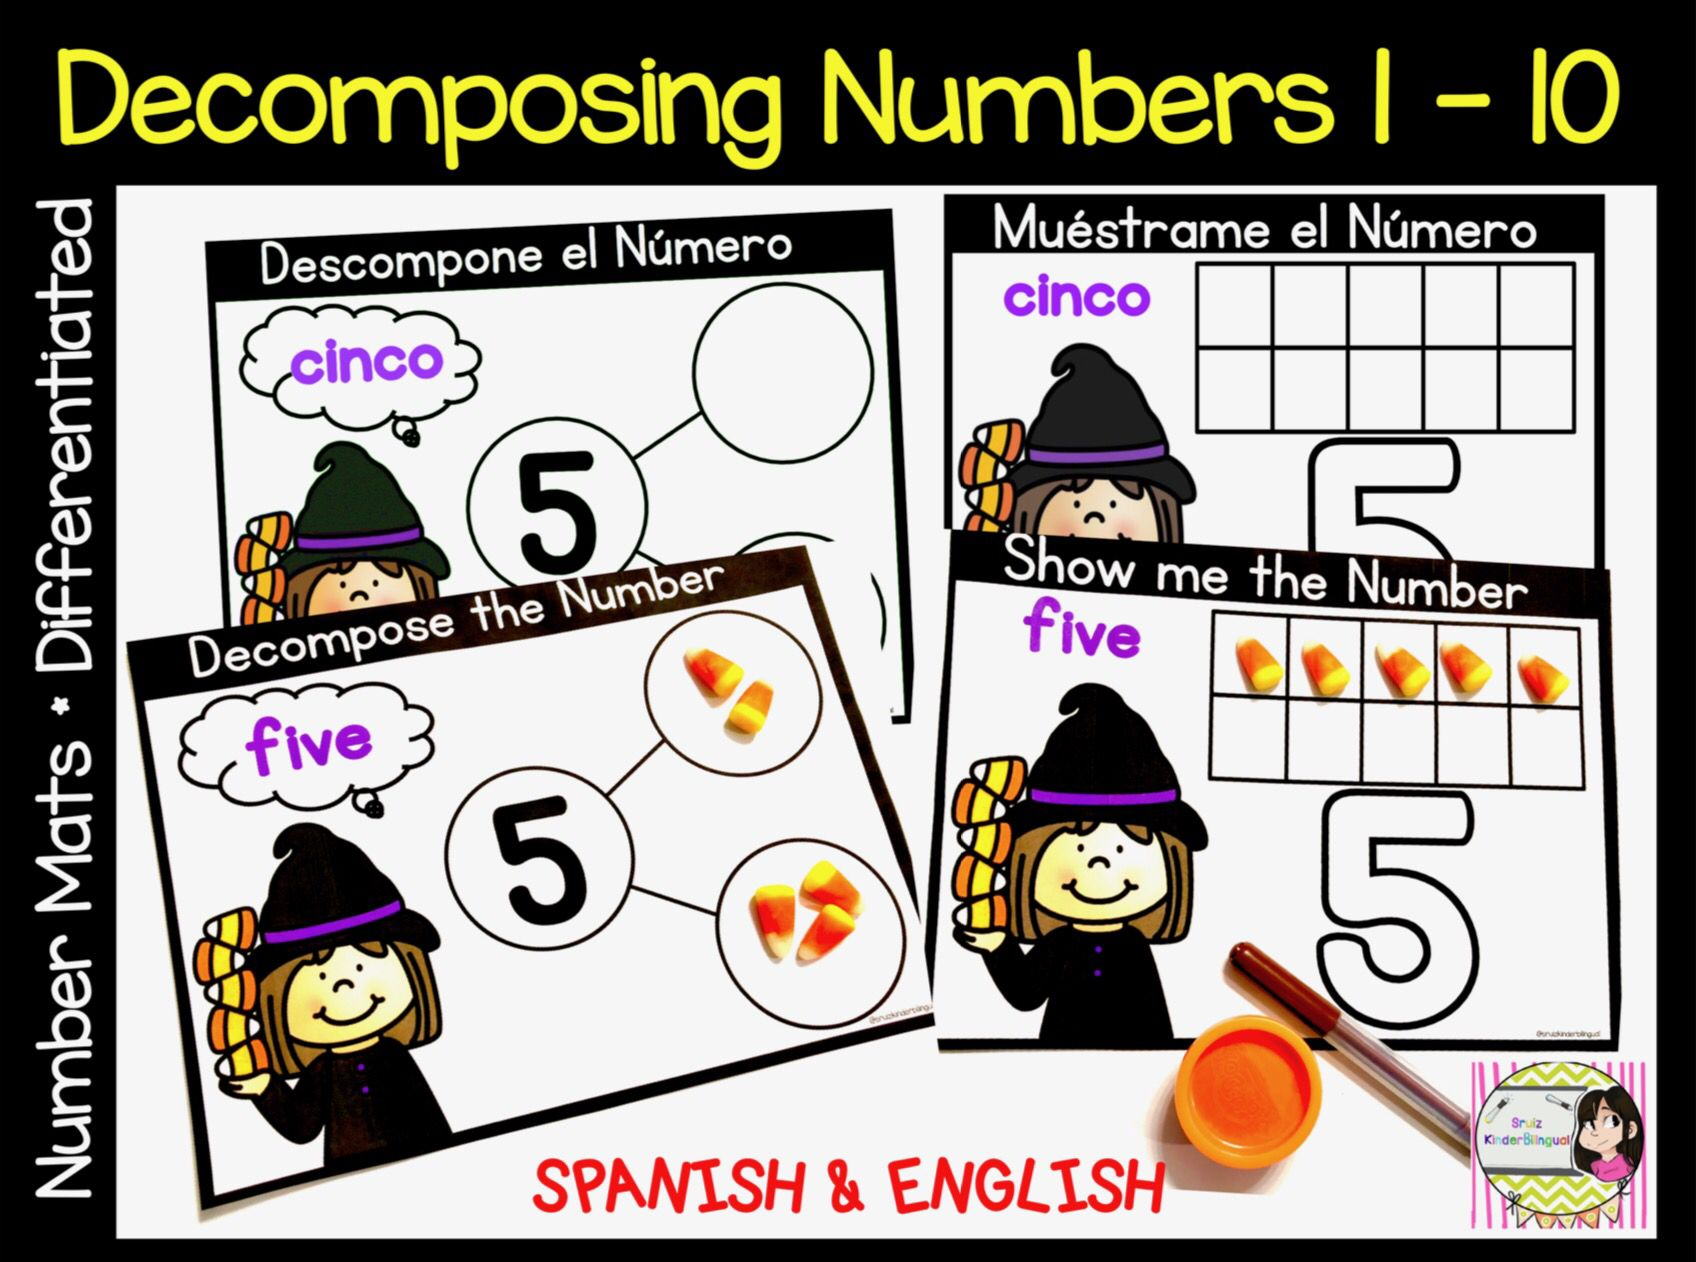 Decomposing Numbers 1